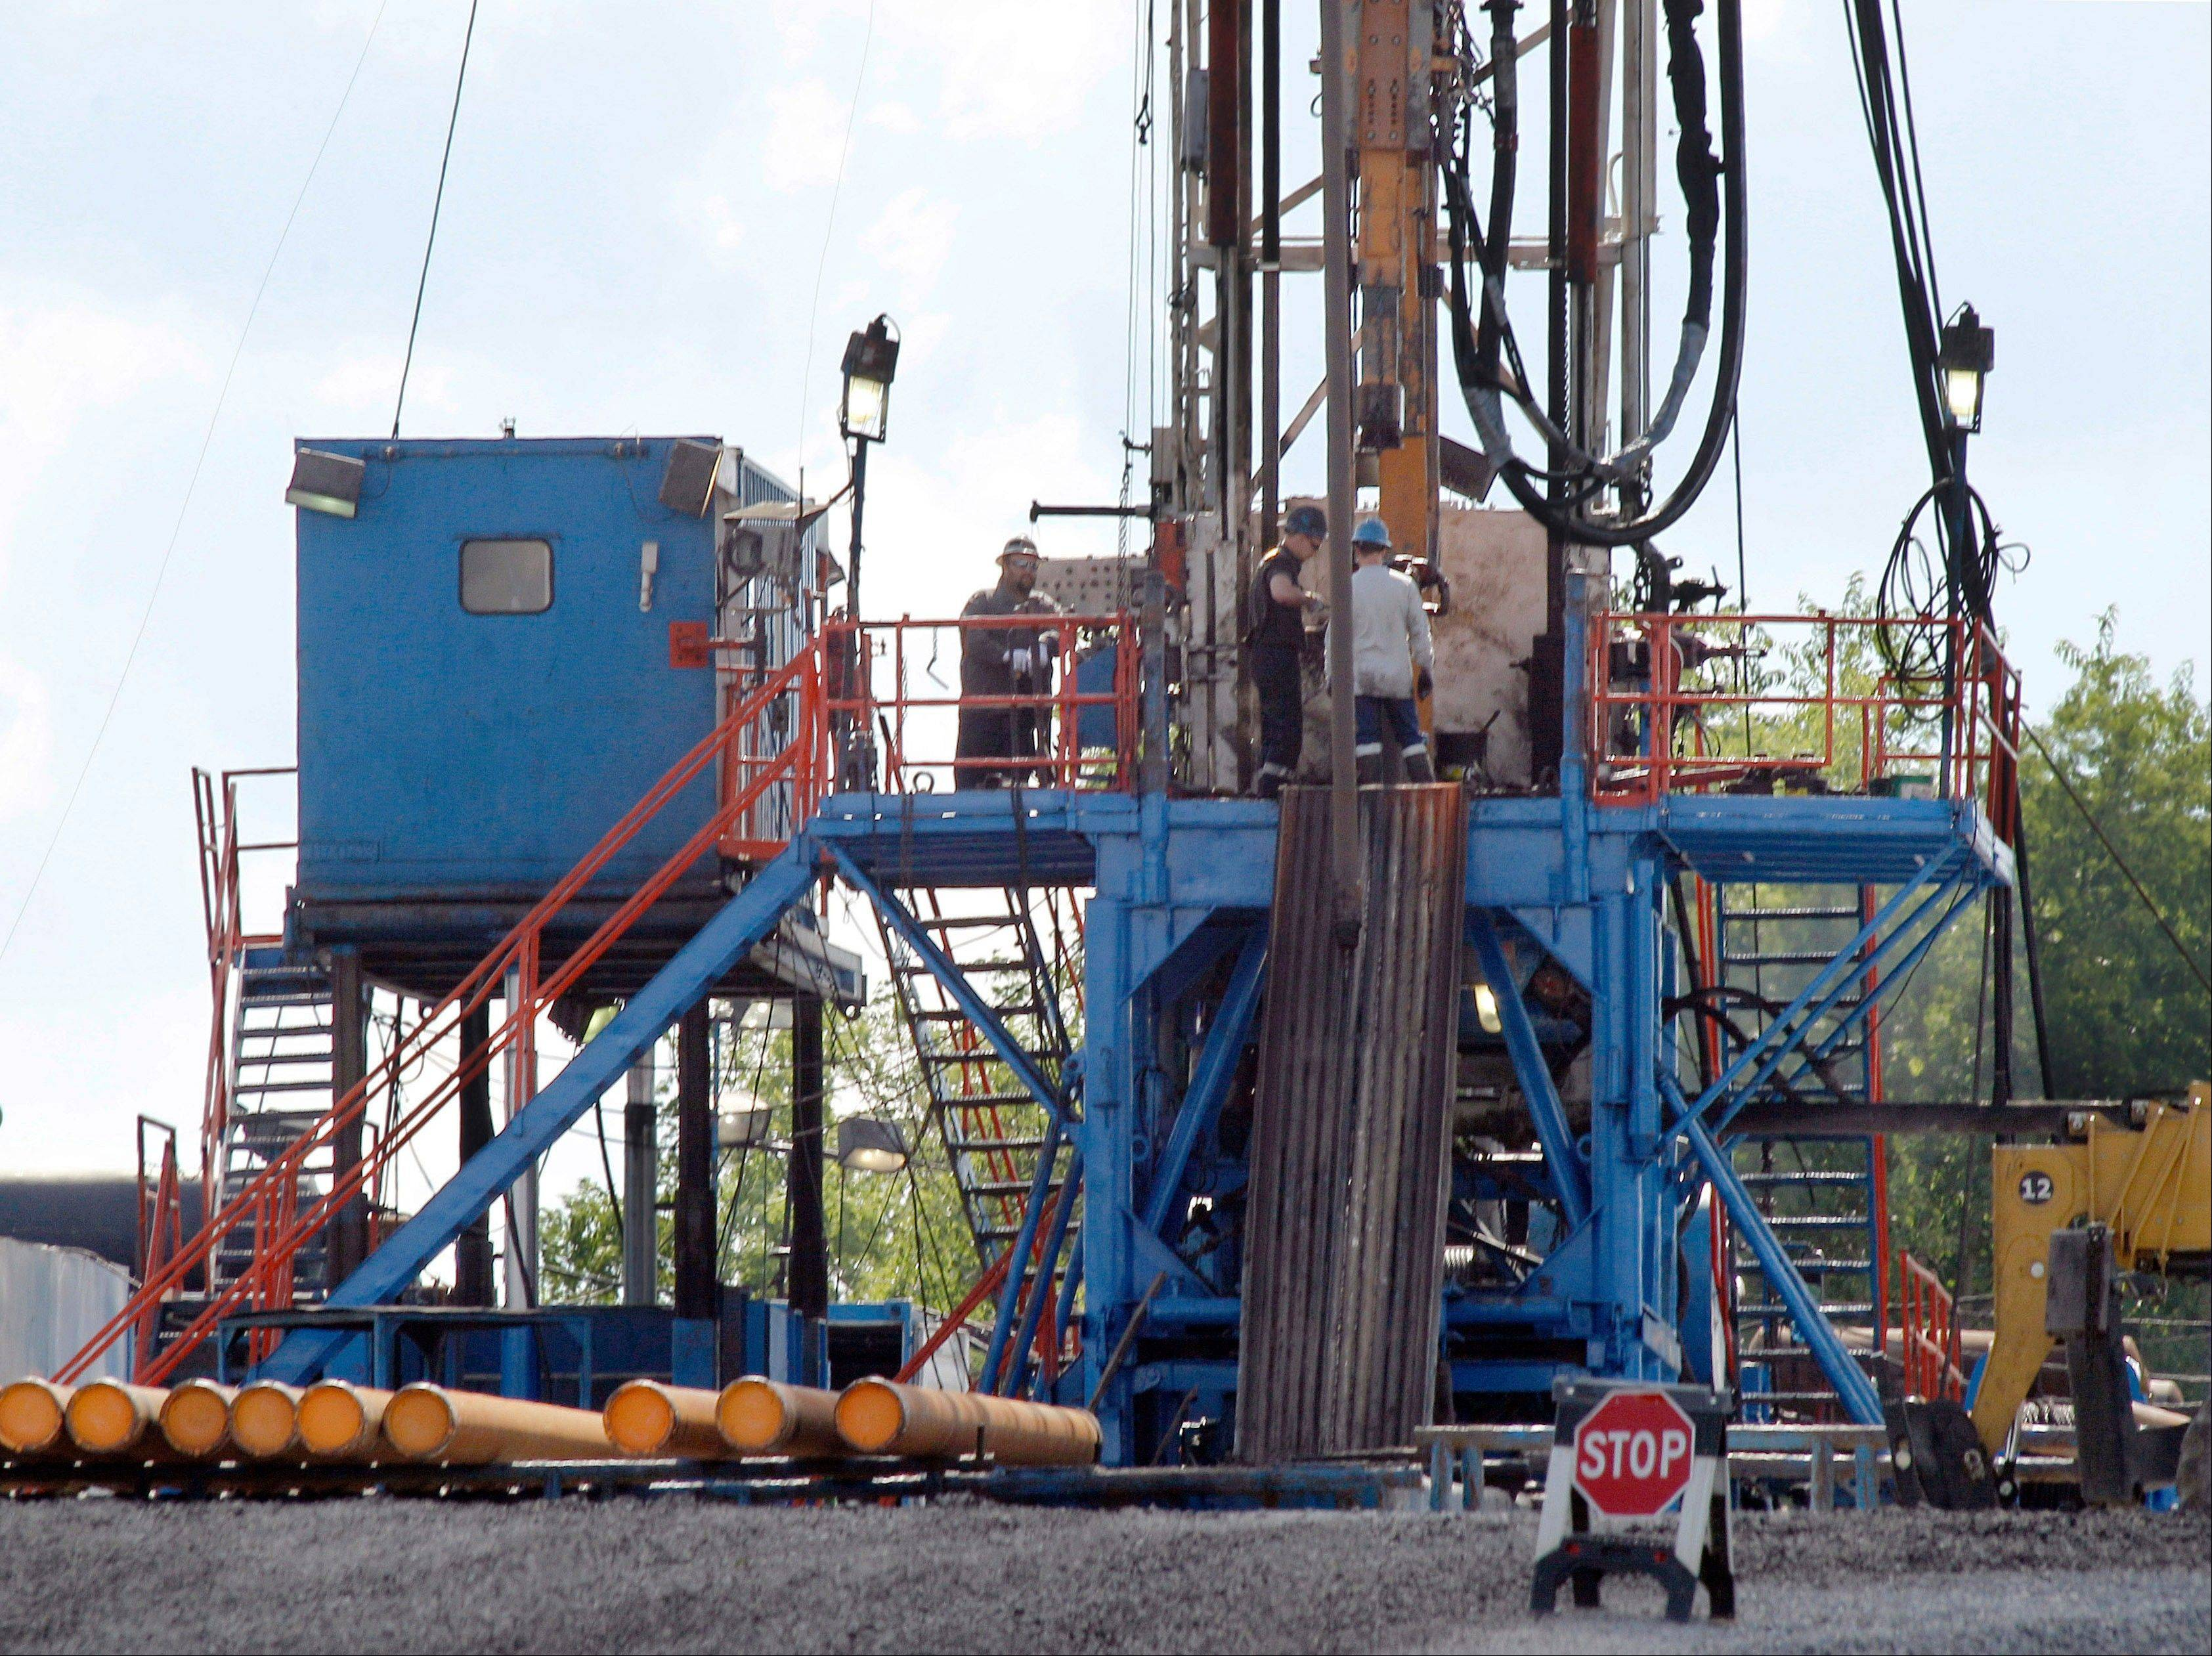 A crew works on a gas drilling rig at a well site for shale based natural gas in Zelienople, Pa.